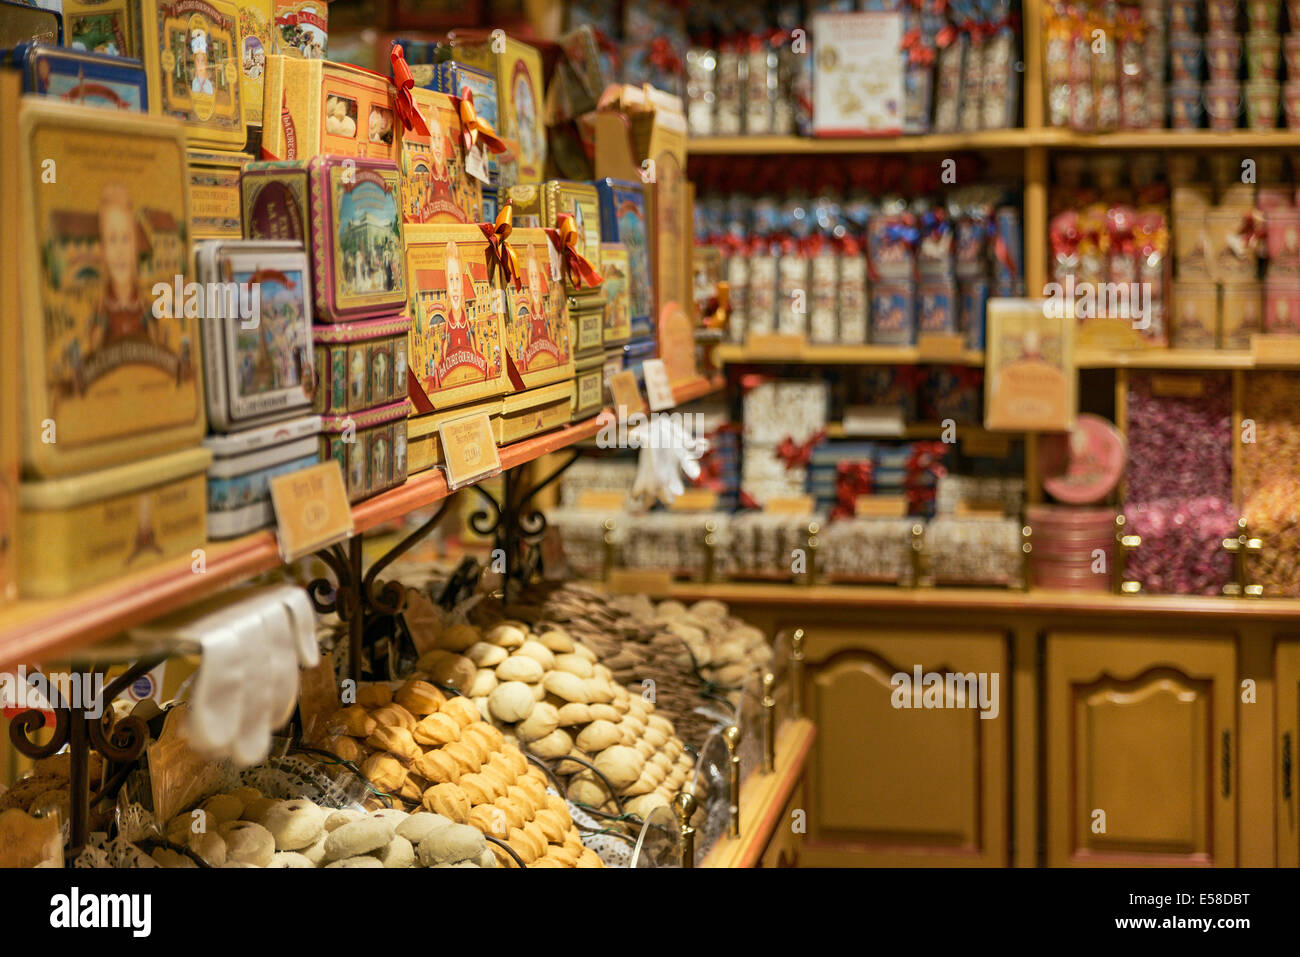 La Cure Gourmande, Saint Paul de Vence, France - Stock Image